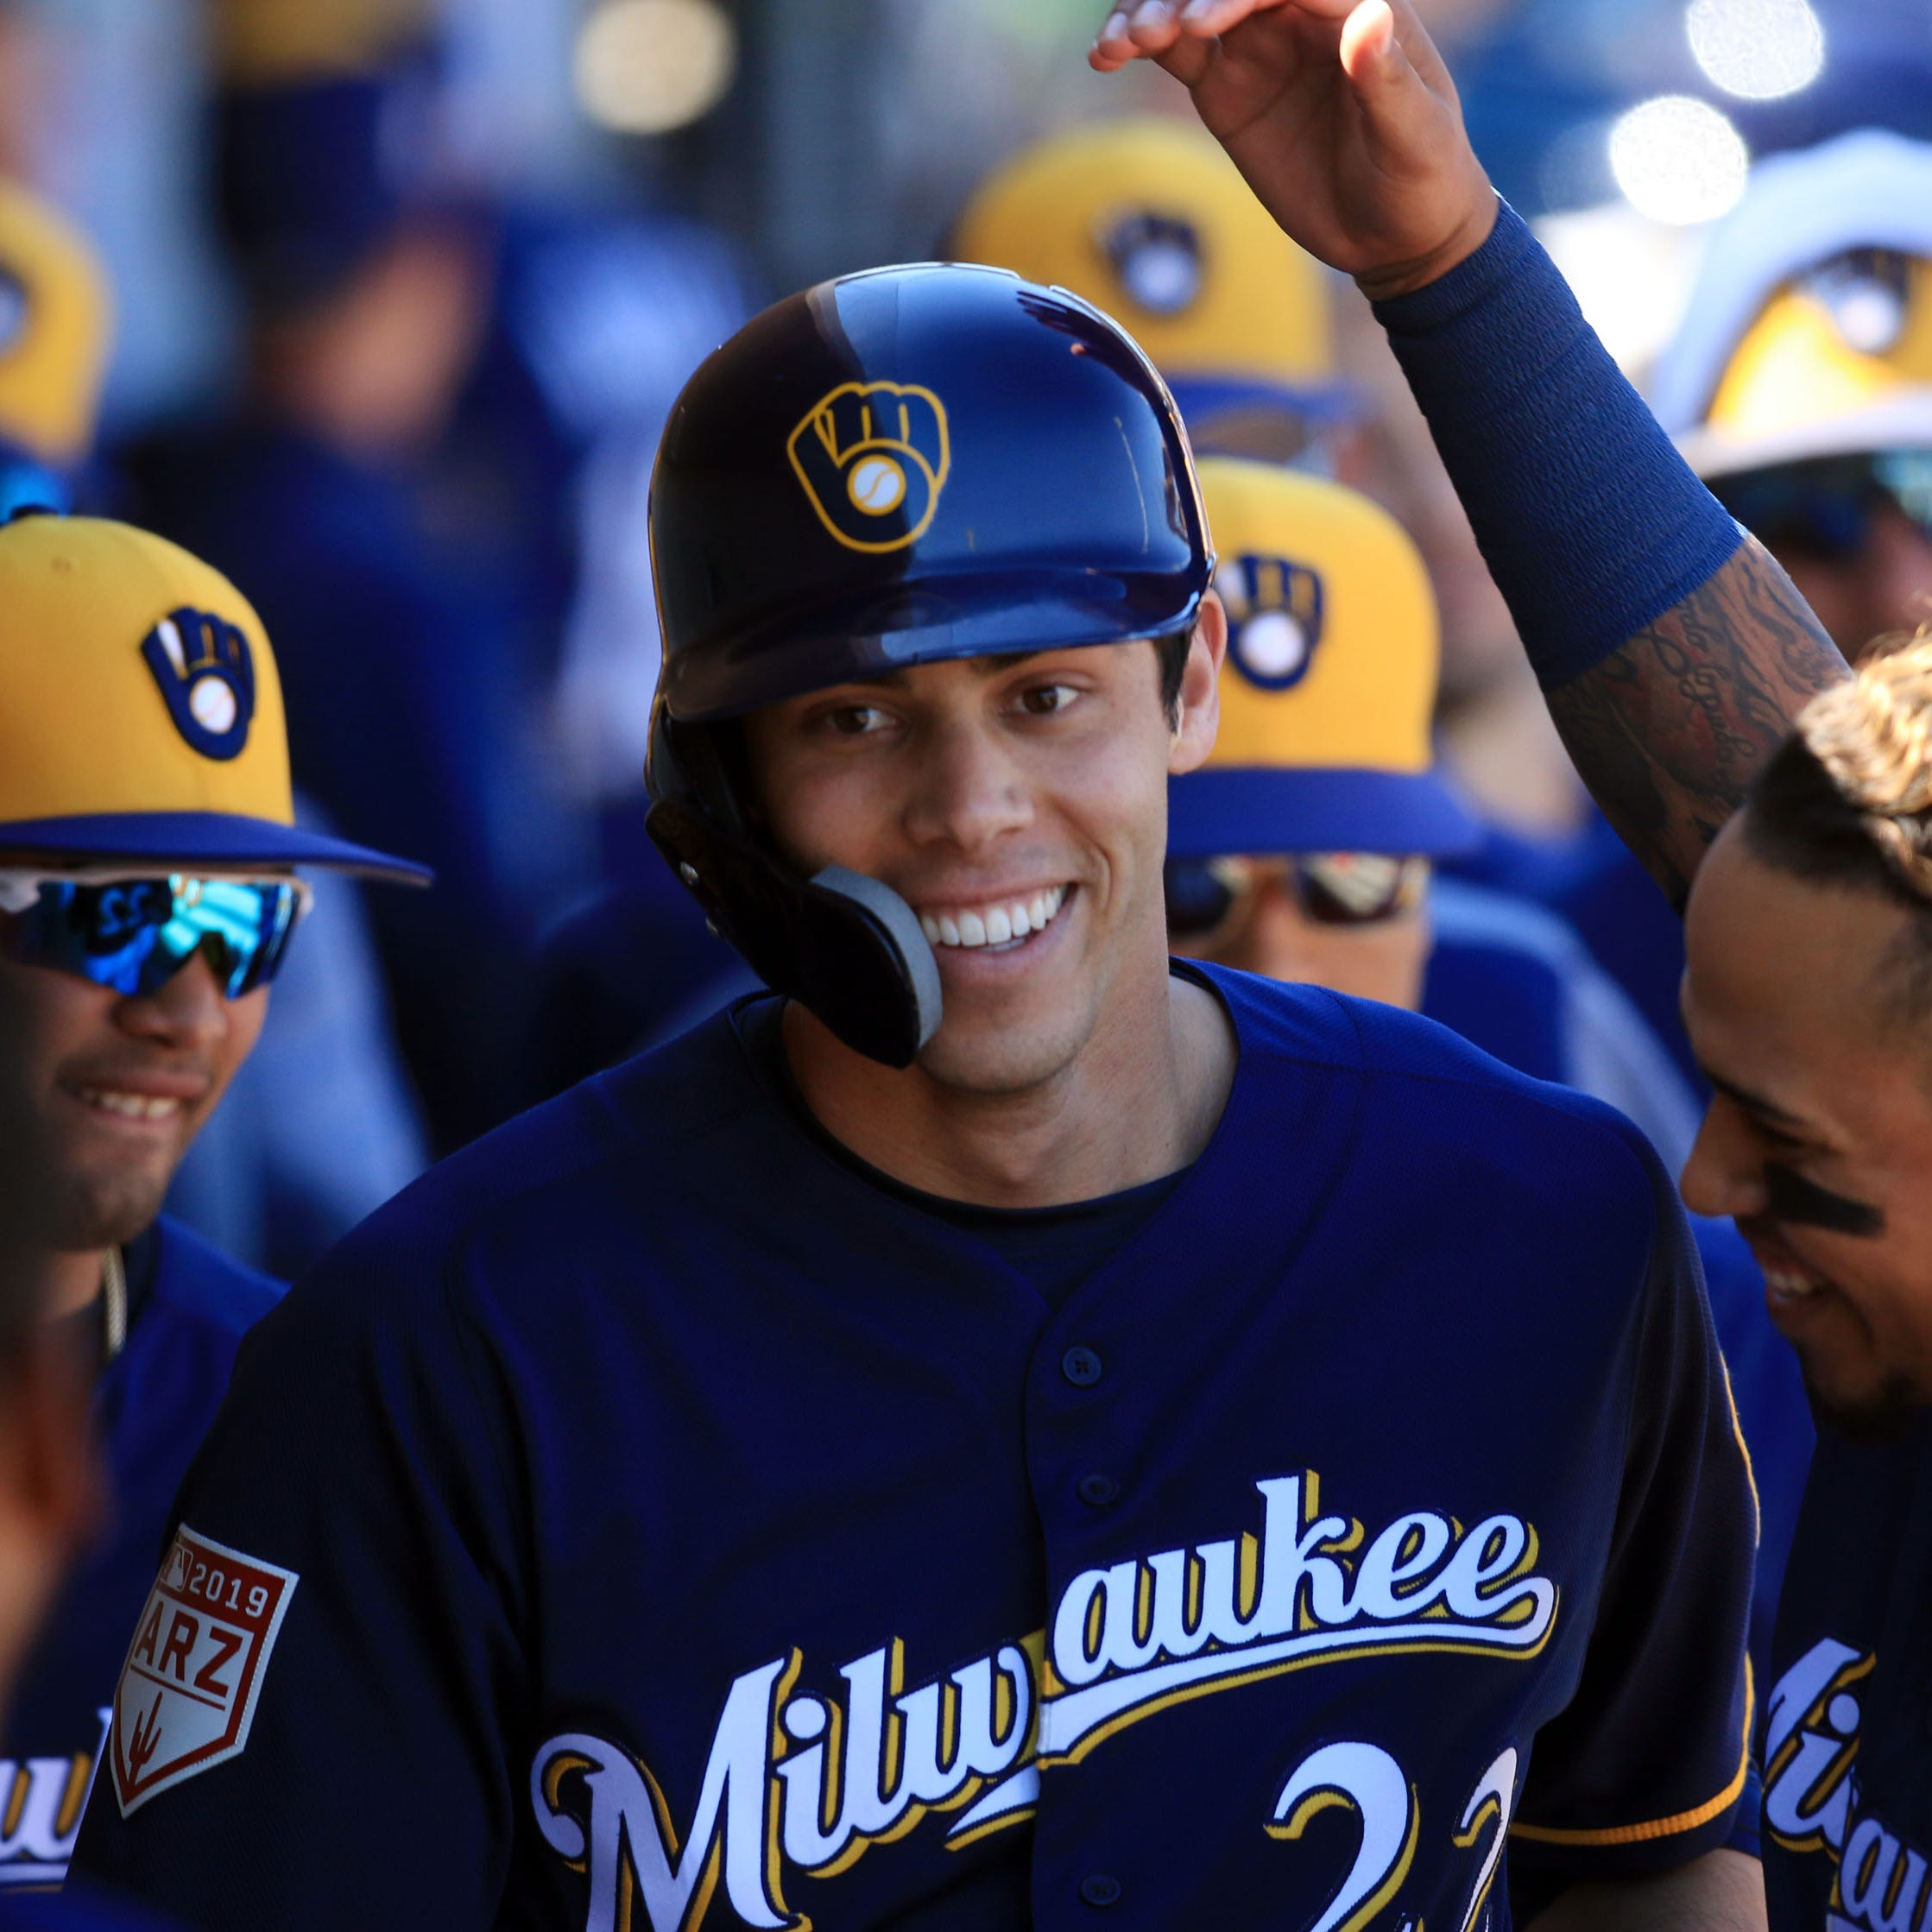 Our 1-25 ranking of the 2019 Milwaukee Brewers roster